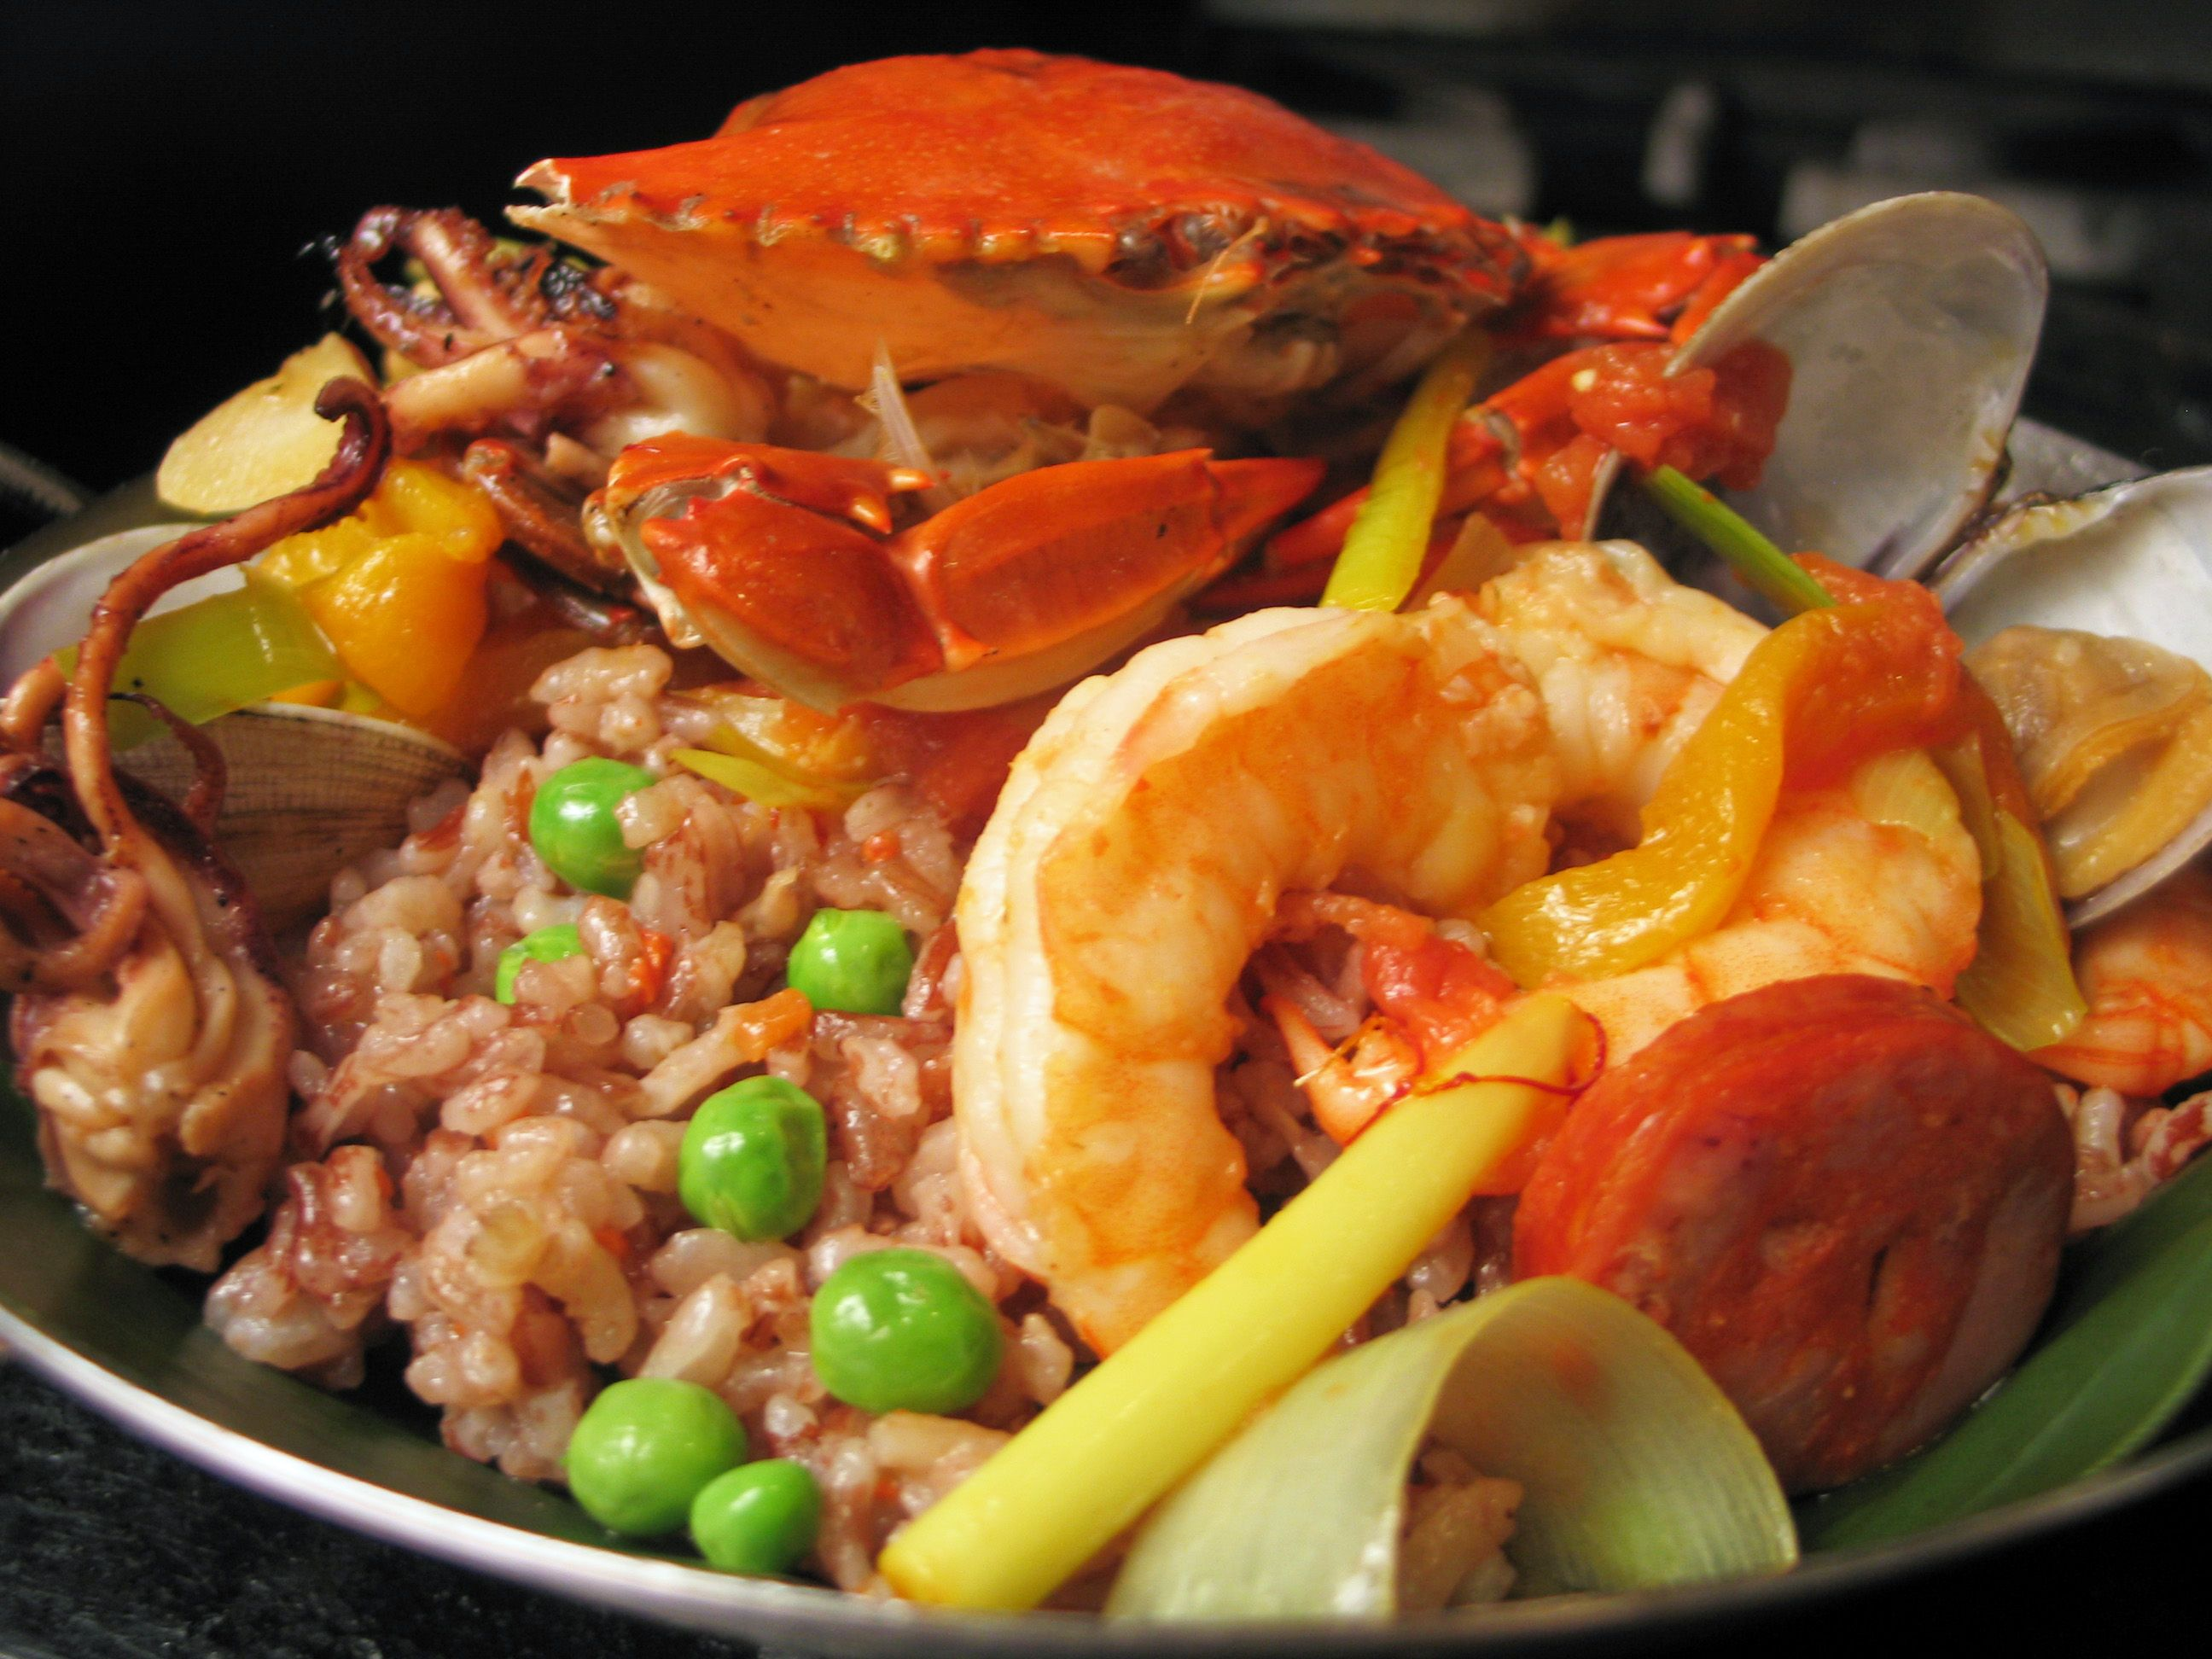 Diket paella using heirloom rice from the philippine terraces diket paella using heirloom rice from the philippine terraces forumfinder Image collections